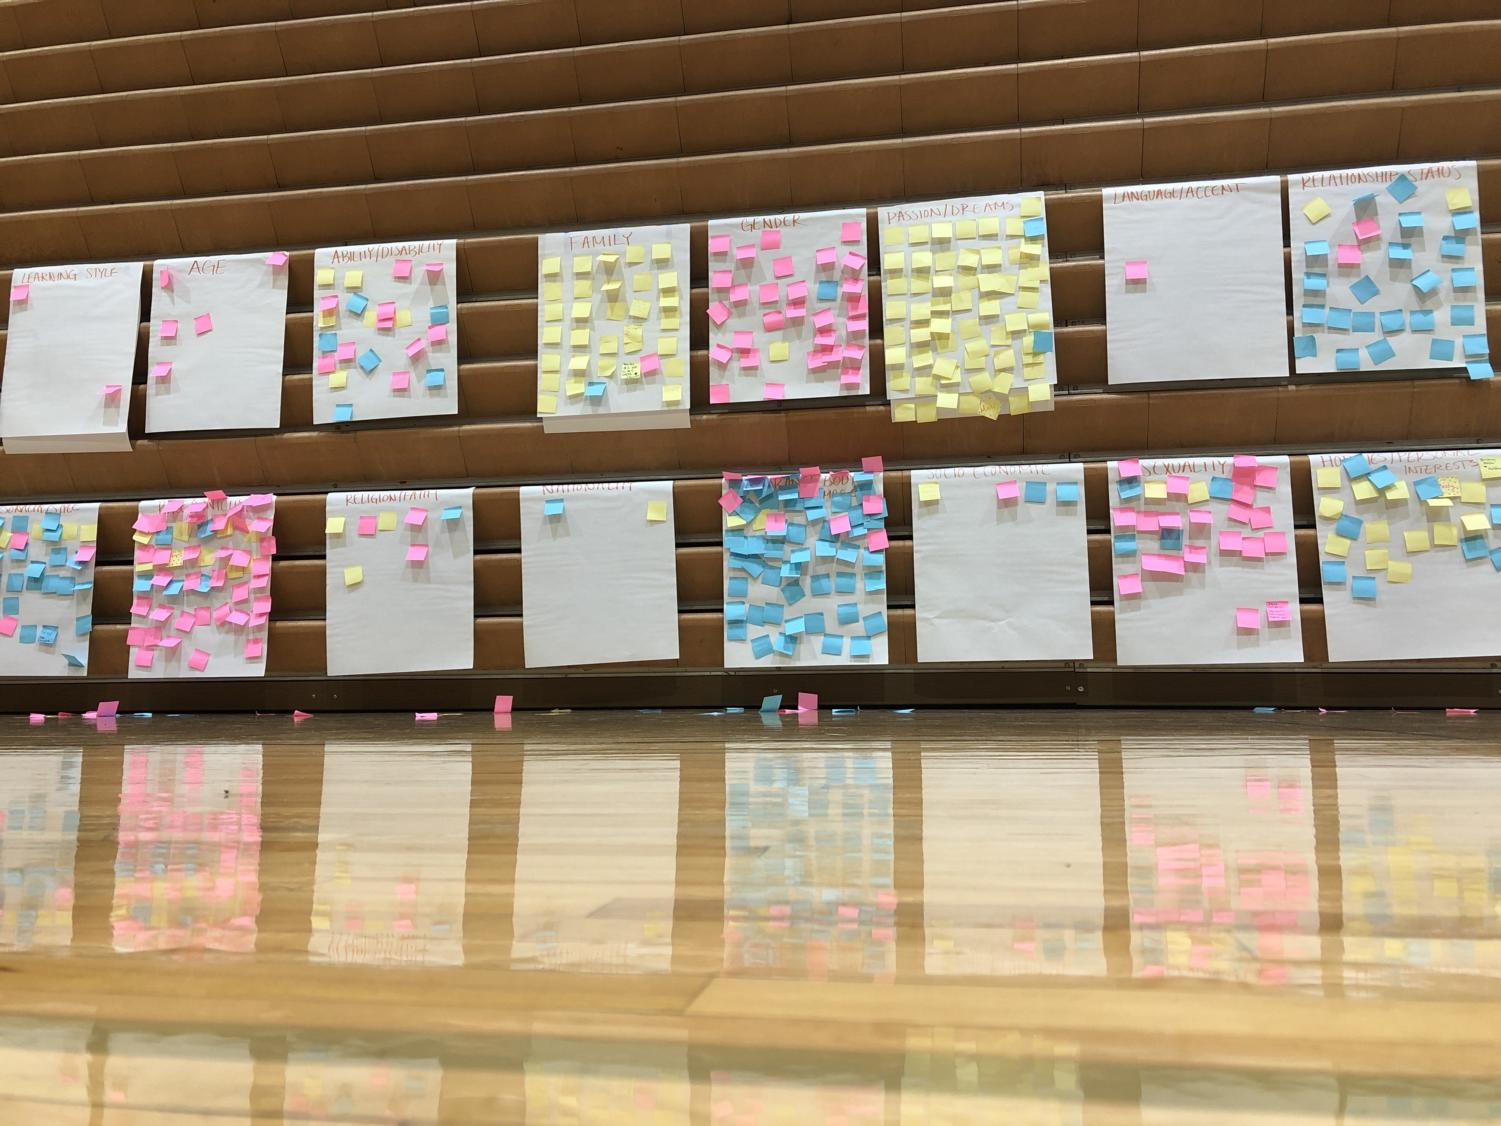 A post-it note activity where participants reflected on the DGS community.